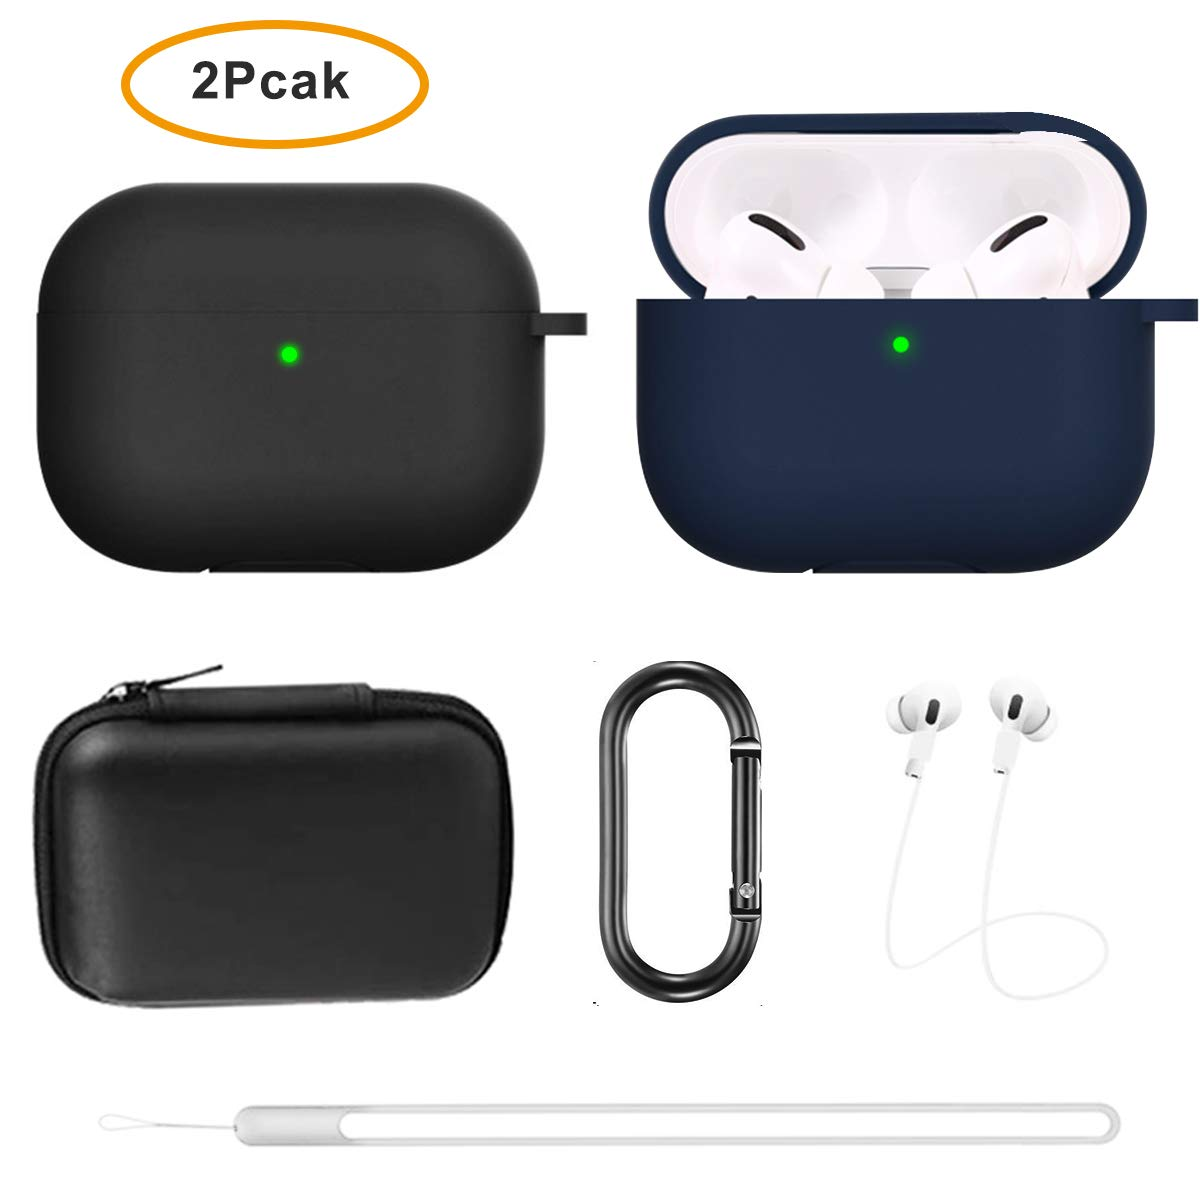 Aiiko Airpods Pro Case Cover 2019(2 Pack) Soft Silicone Protective Cover with Keychain/Anti Lost Strap/EVA Box,New Shockproof Case for Airpods Pro/Airpods 3(Front LED Visible)(Black+Navy Blue)